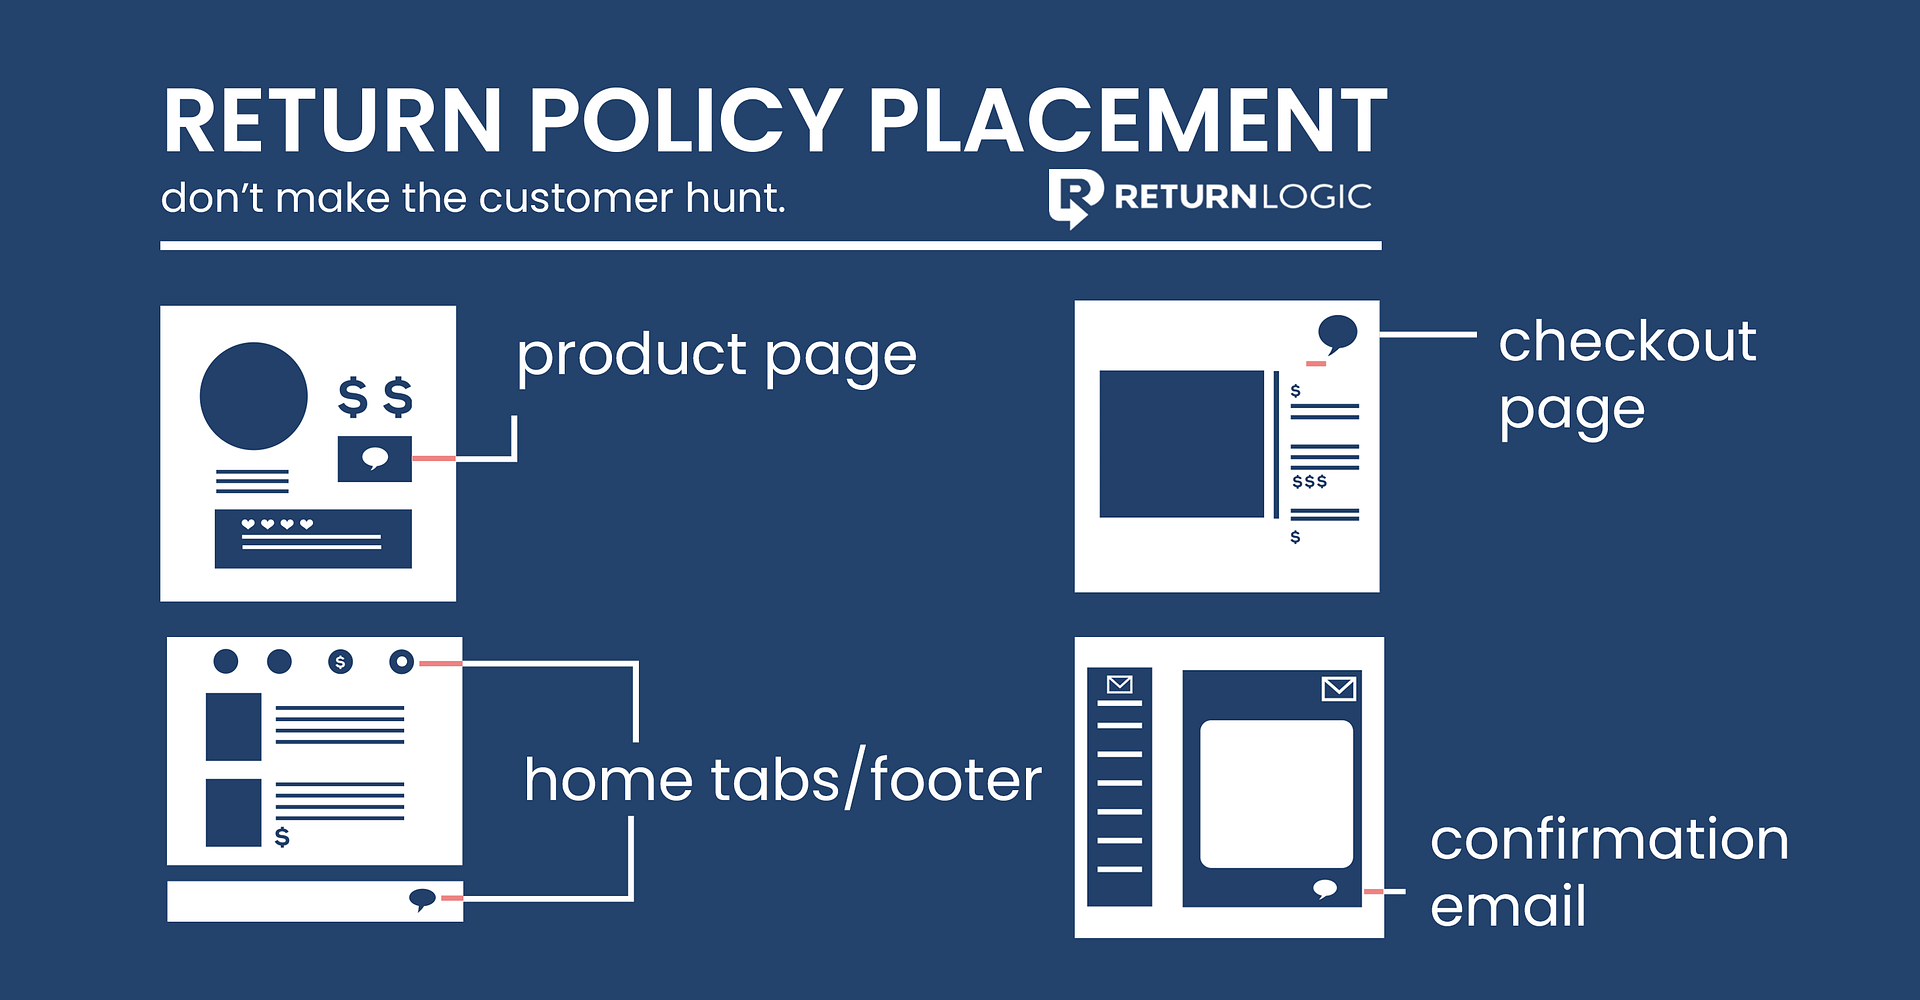 Return Policy Placement